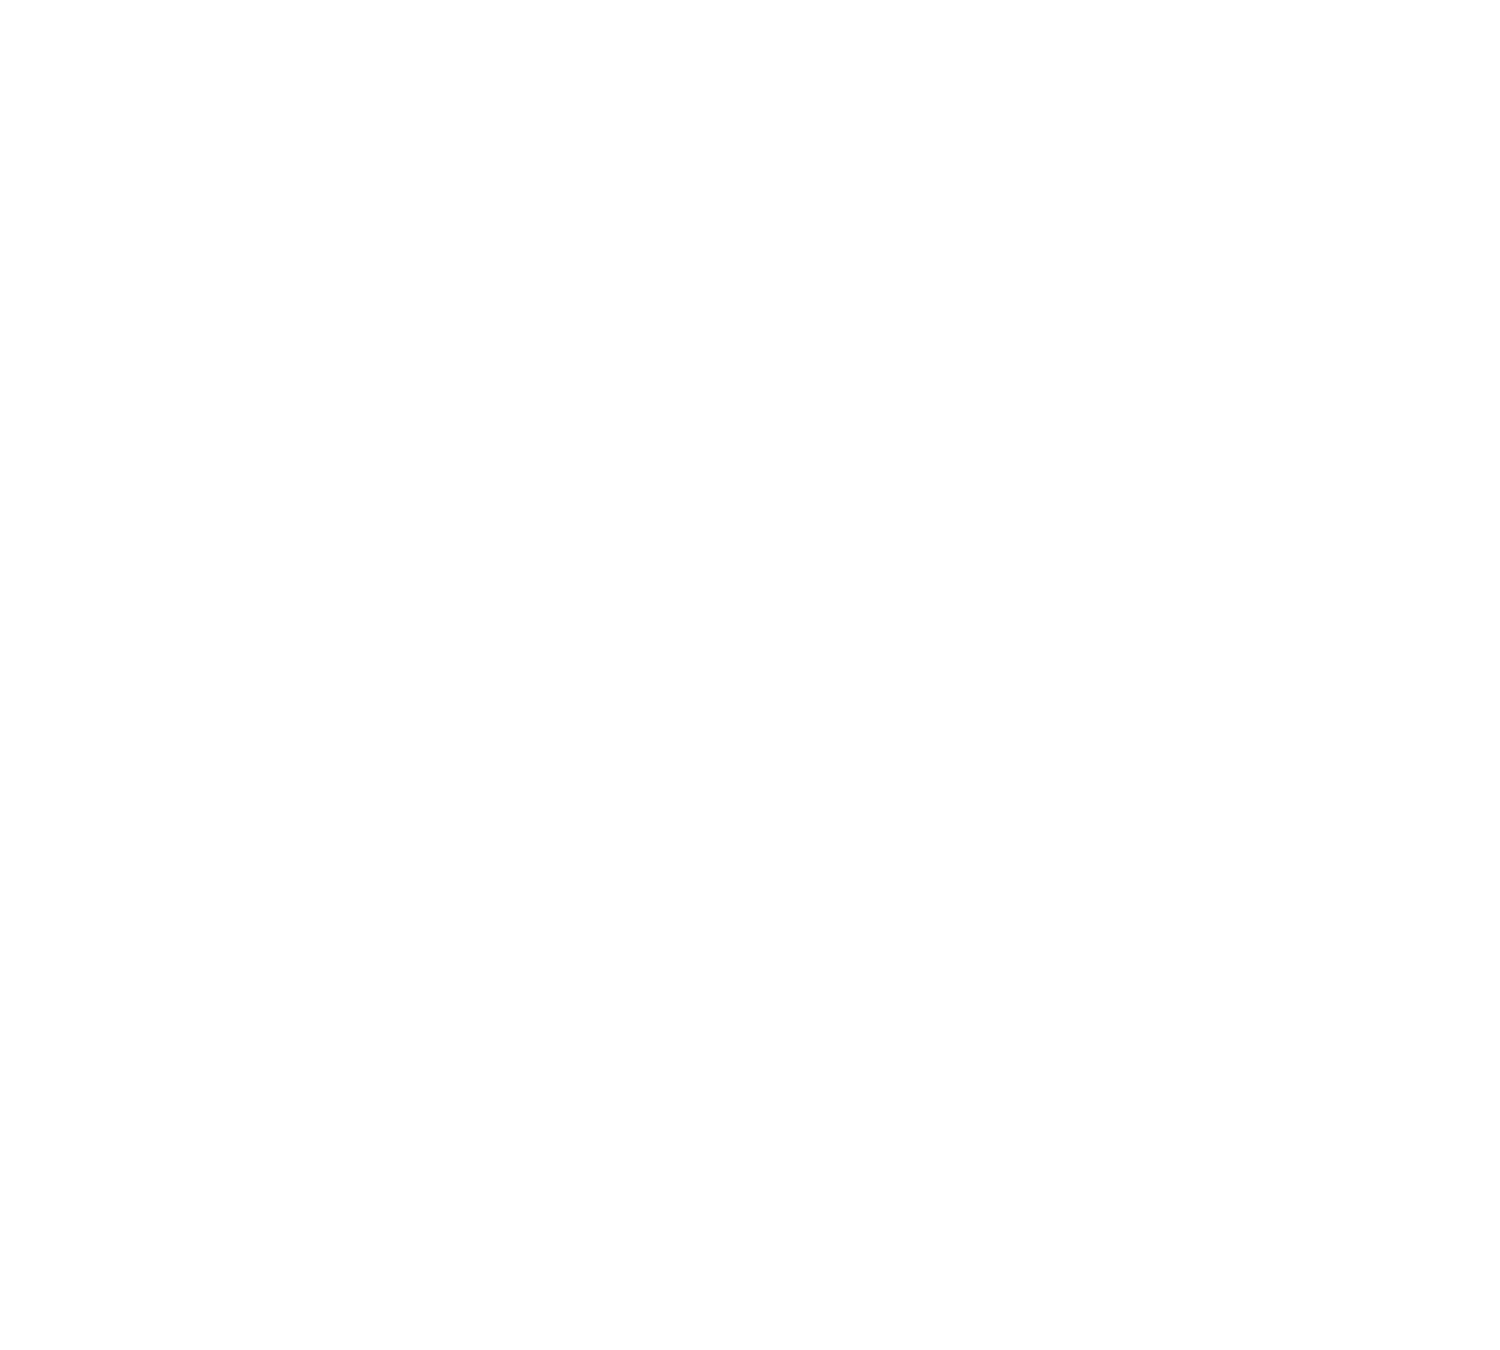 sons & daughters worship school